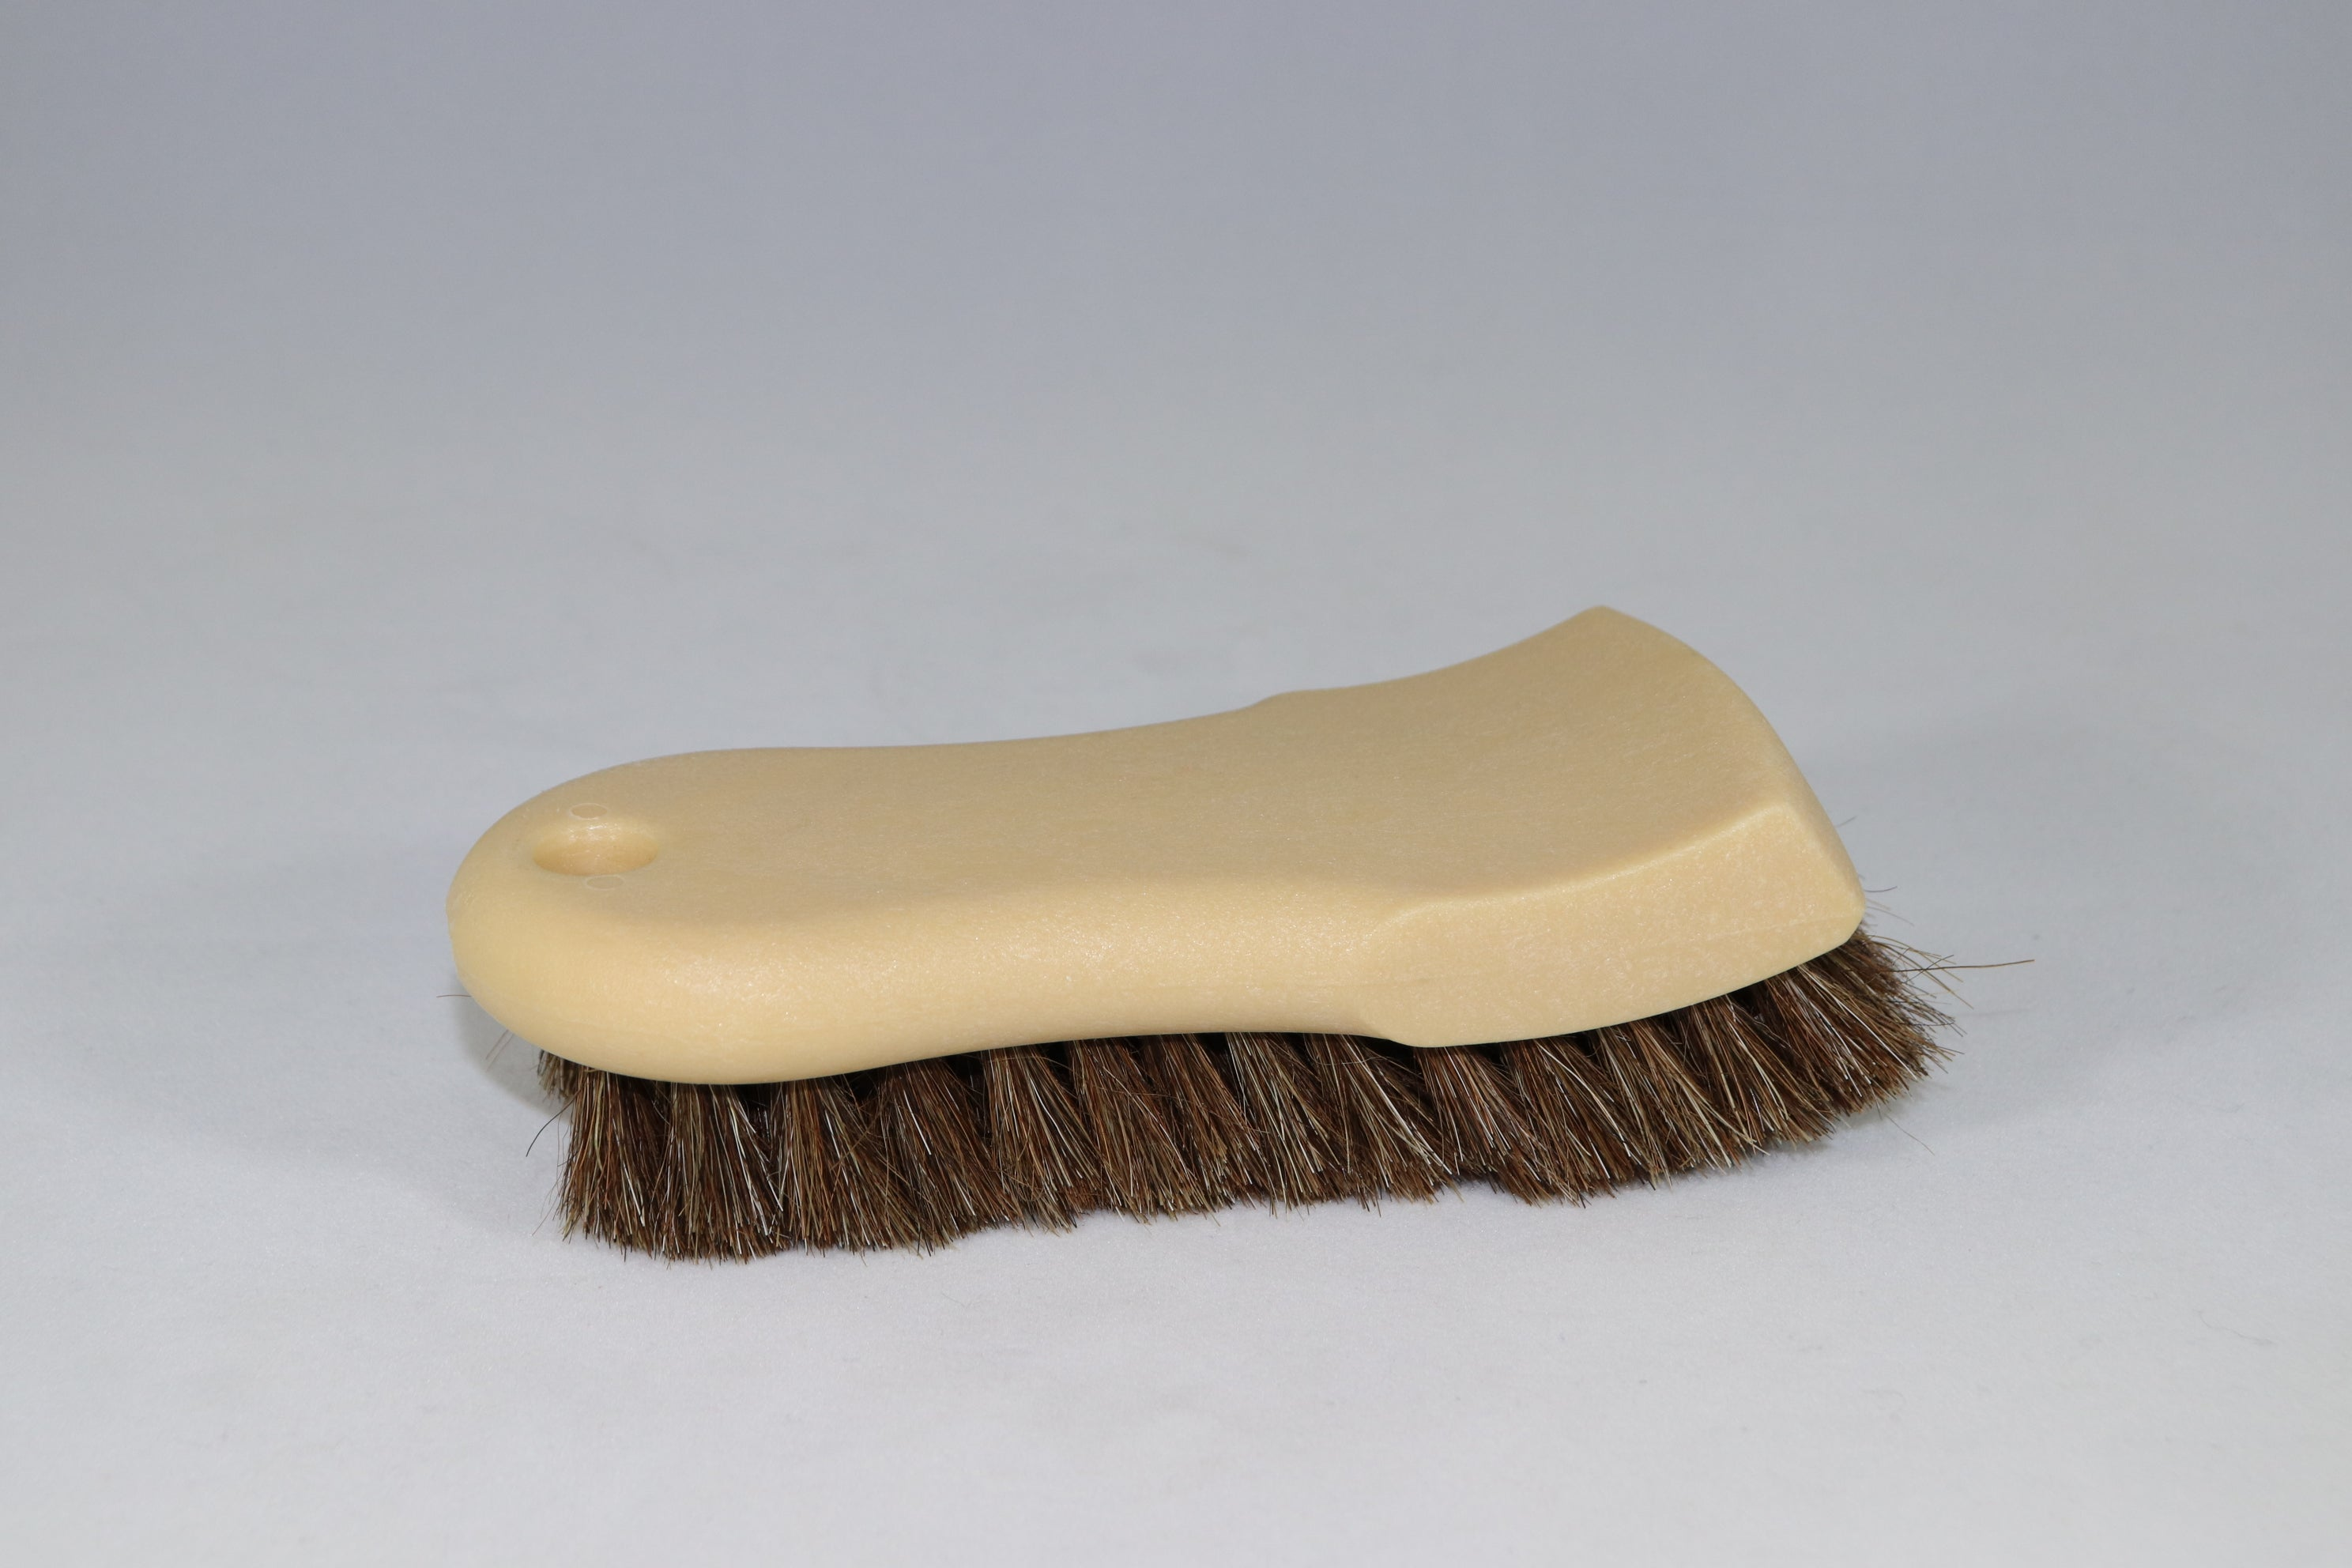 Orbital Pro Leather Scrub Brush